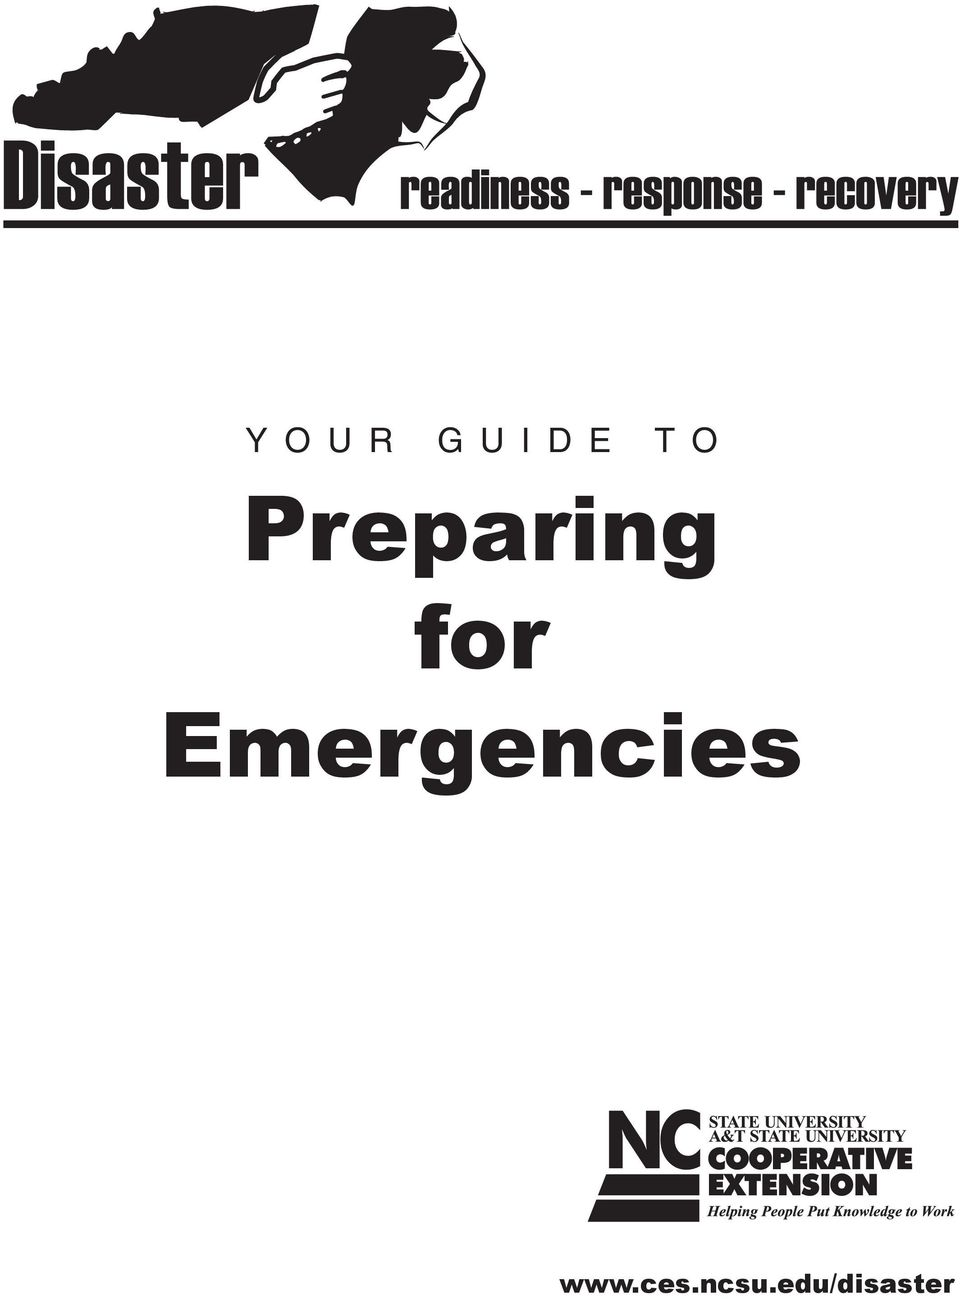 Emergencies www.